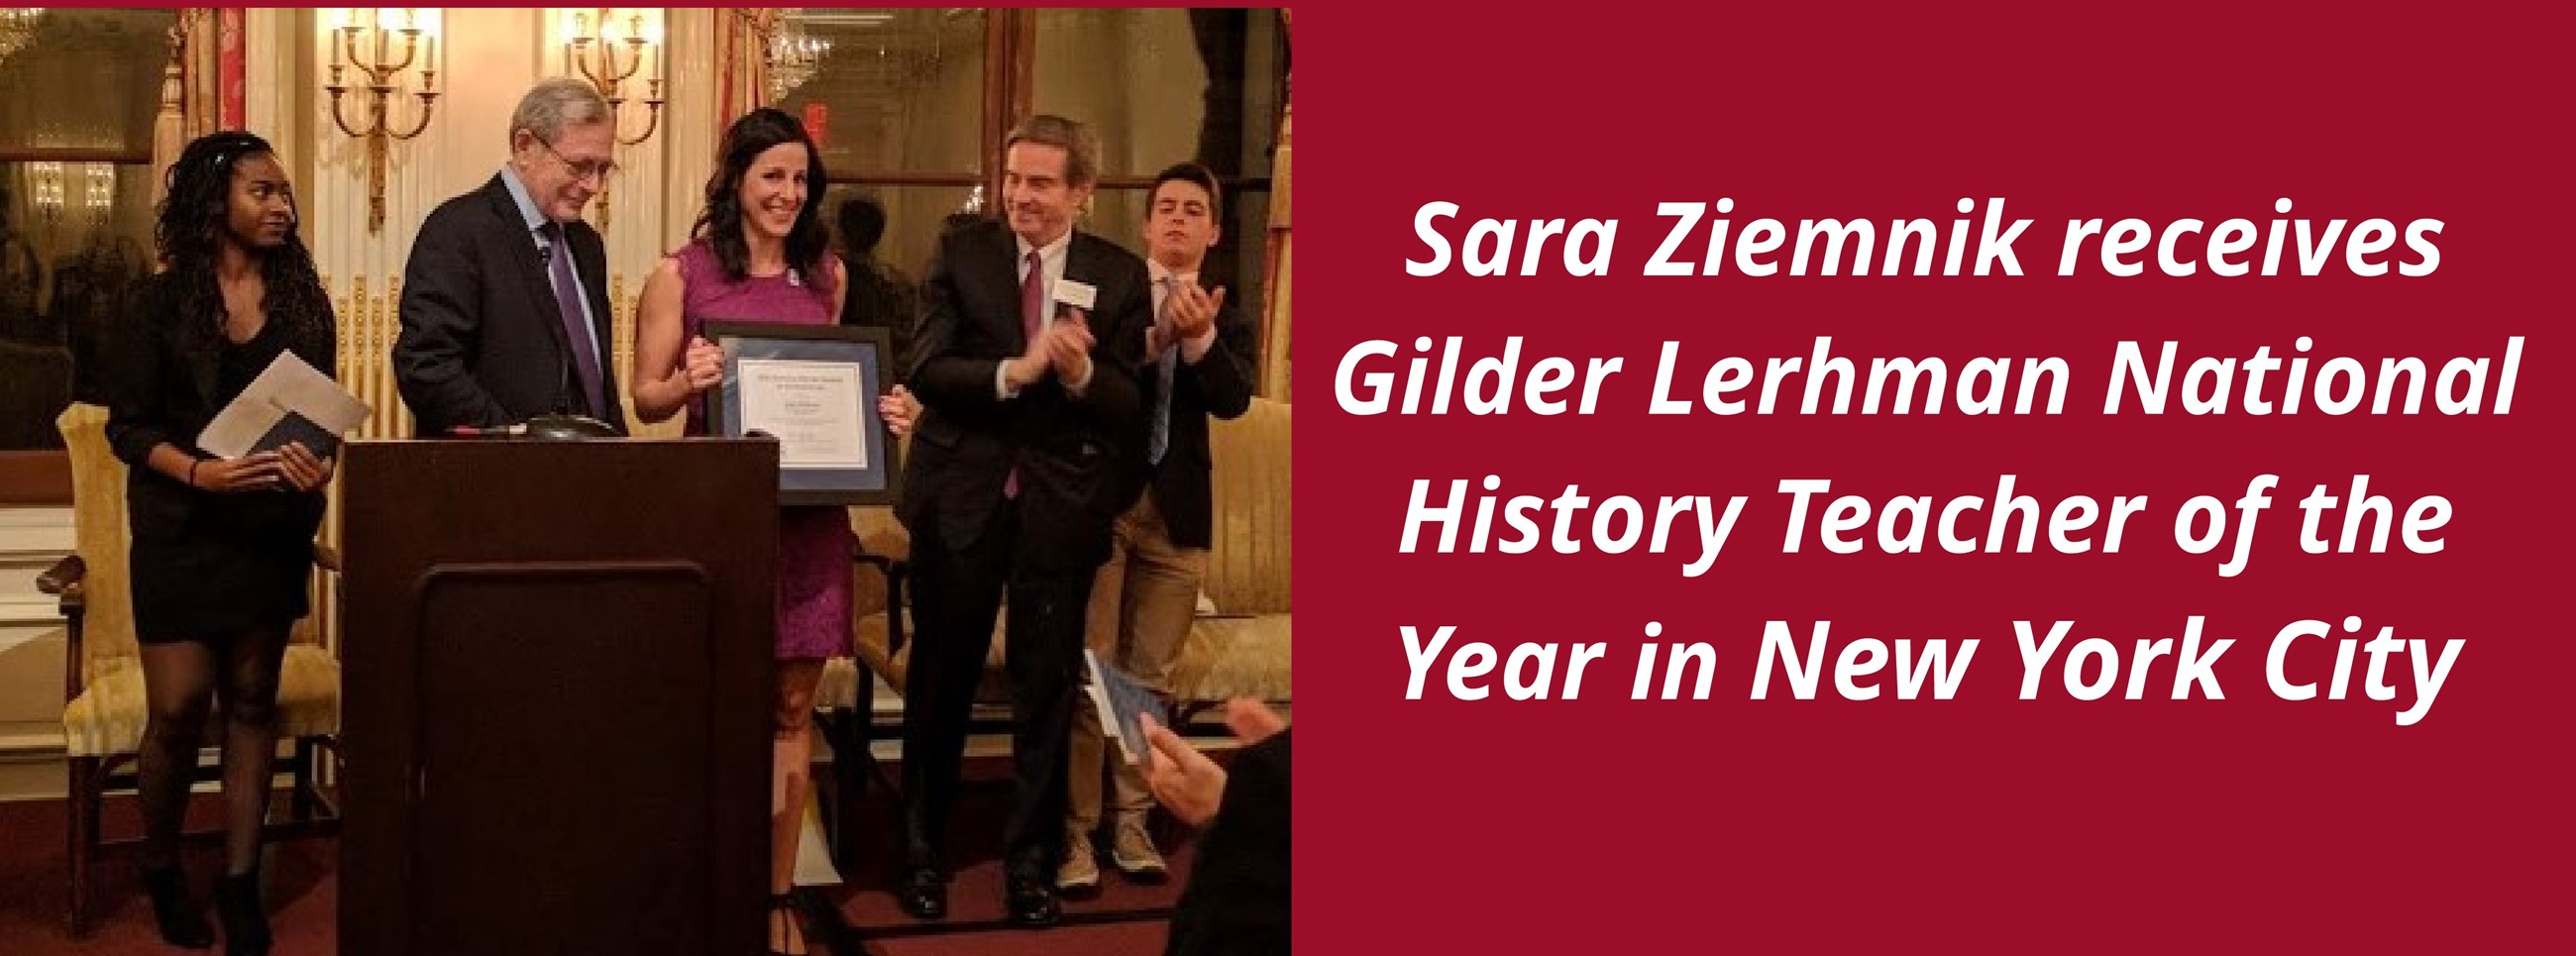 History Teacher Sara Ziemnik on stage with her award and four other by a podium